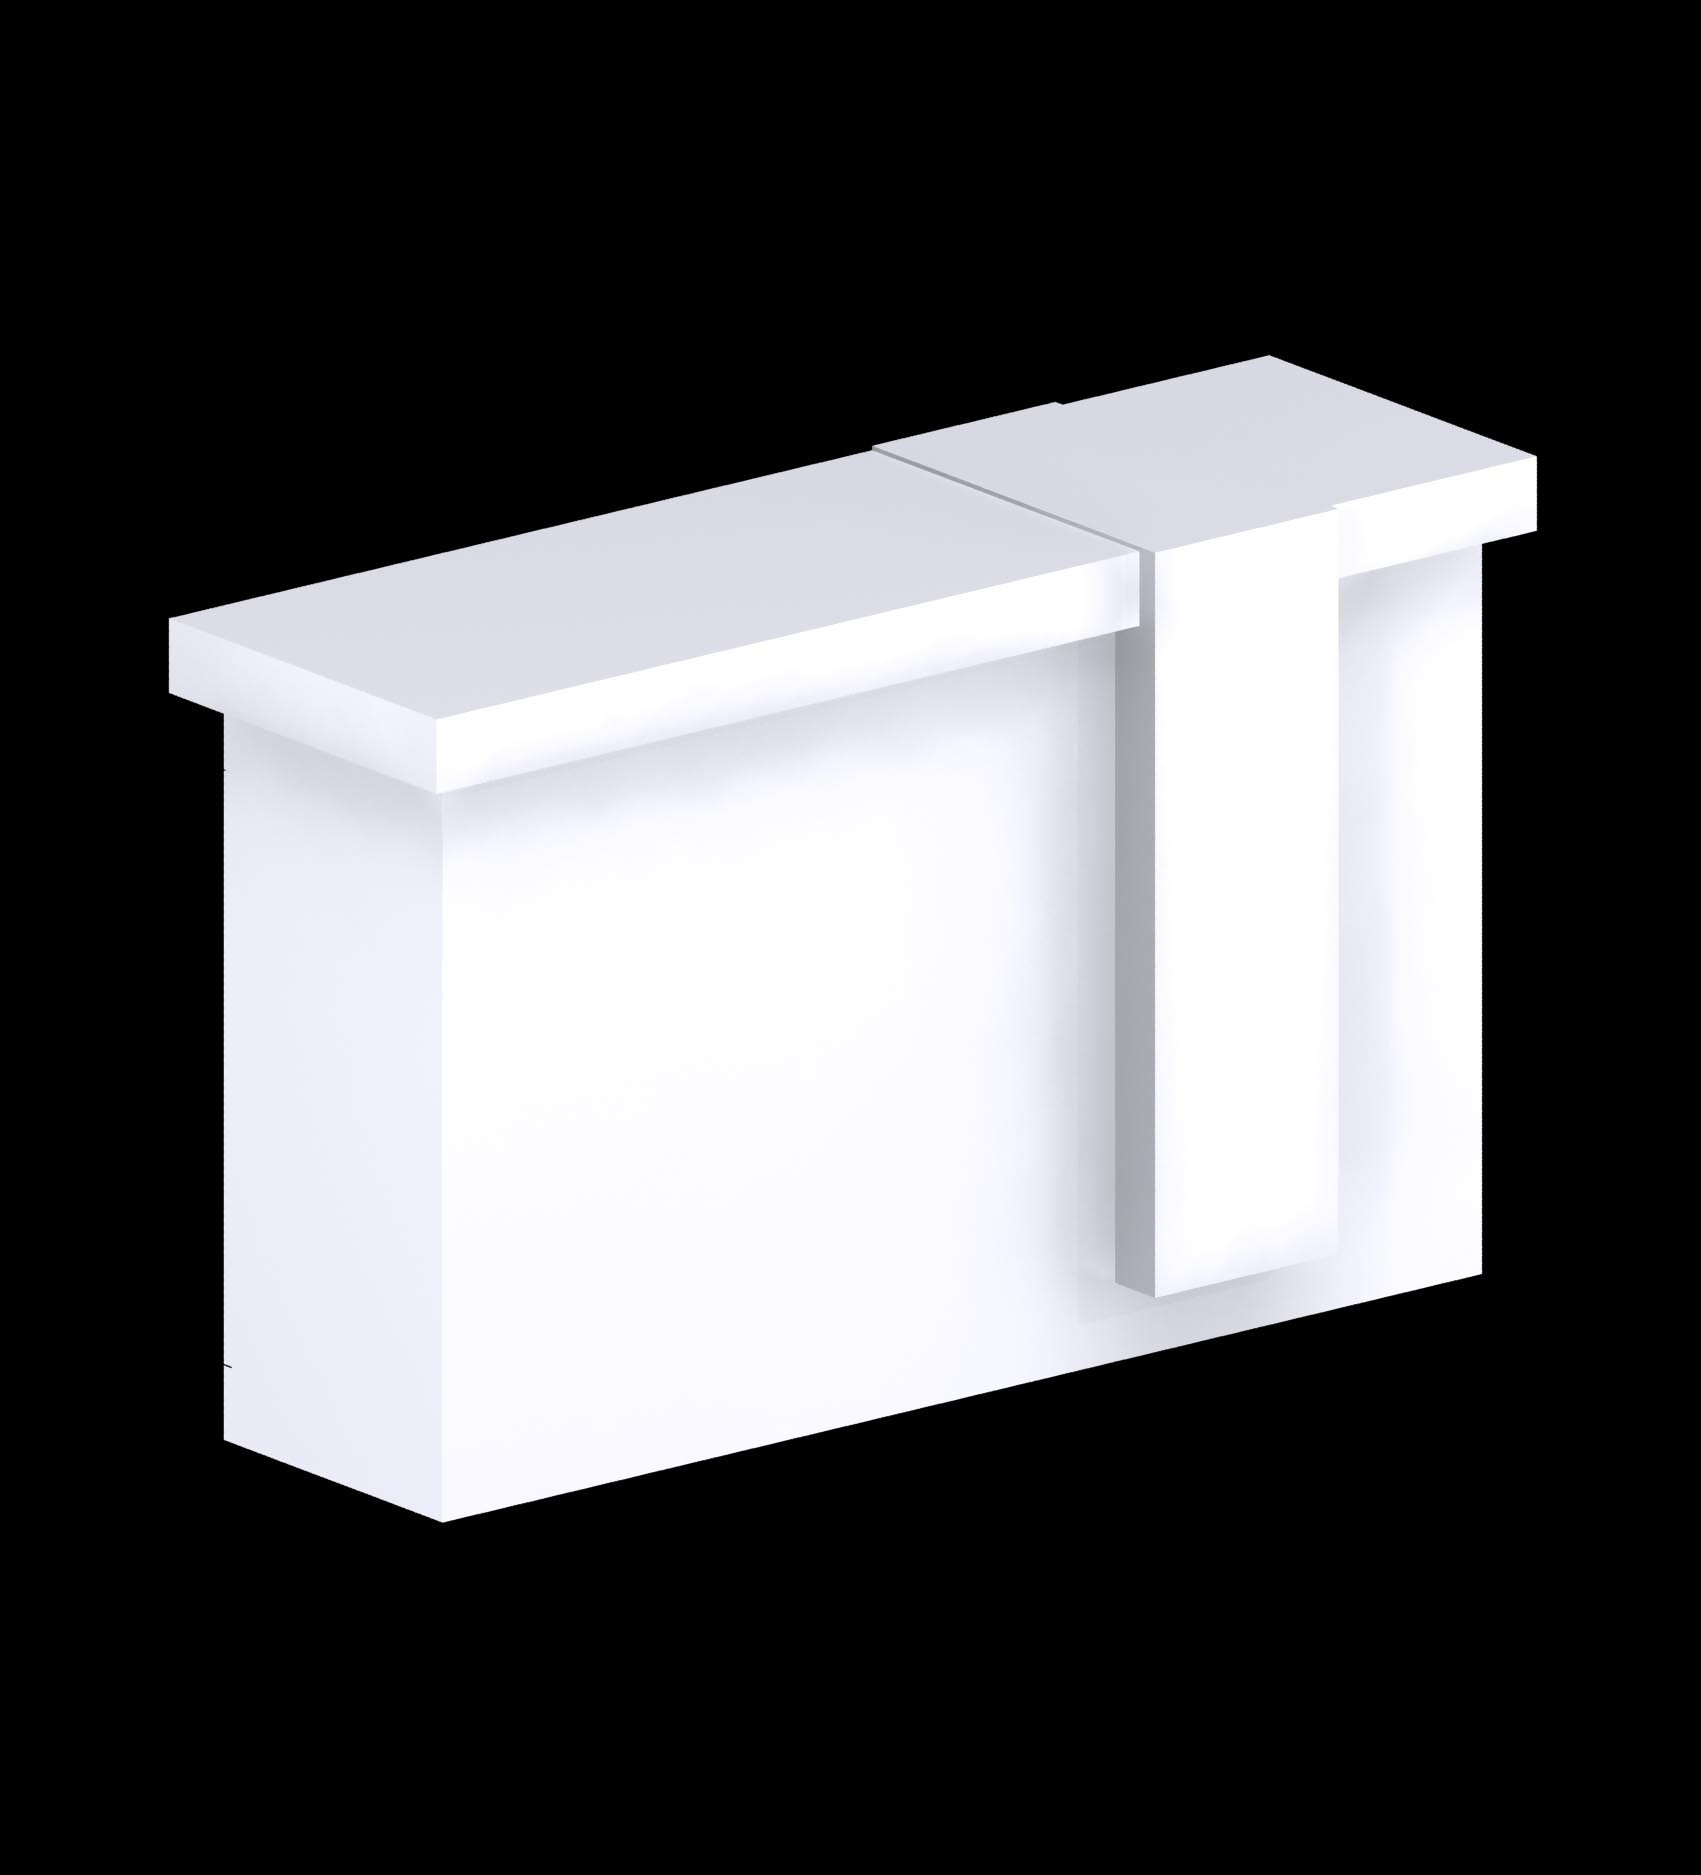 The Custom Made Range - Rectangular counter with lockable storage.